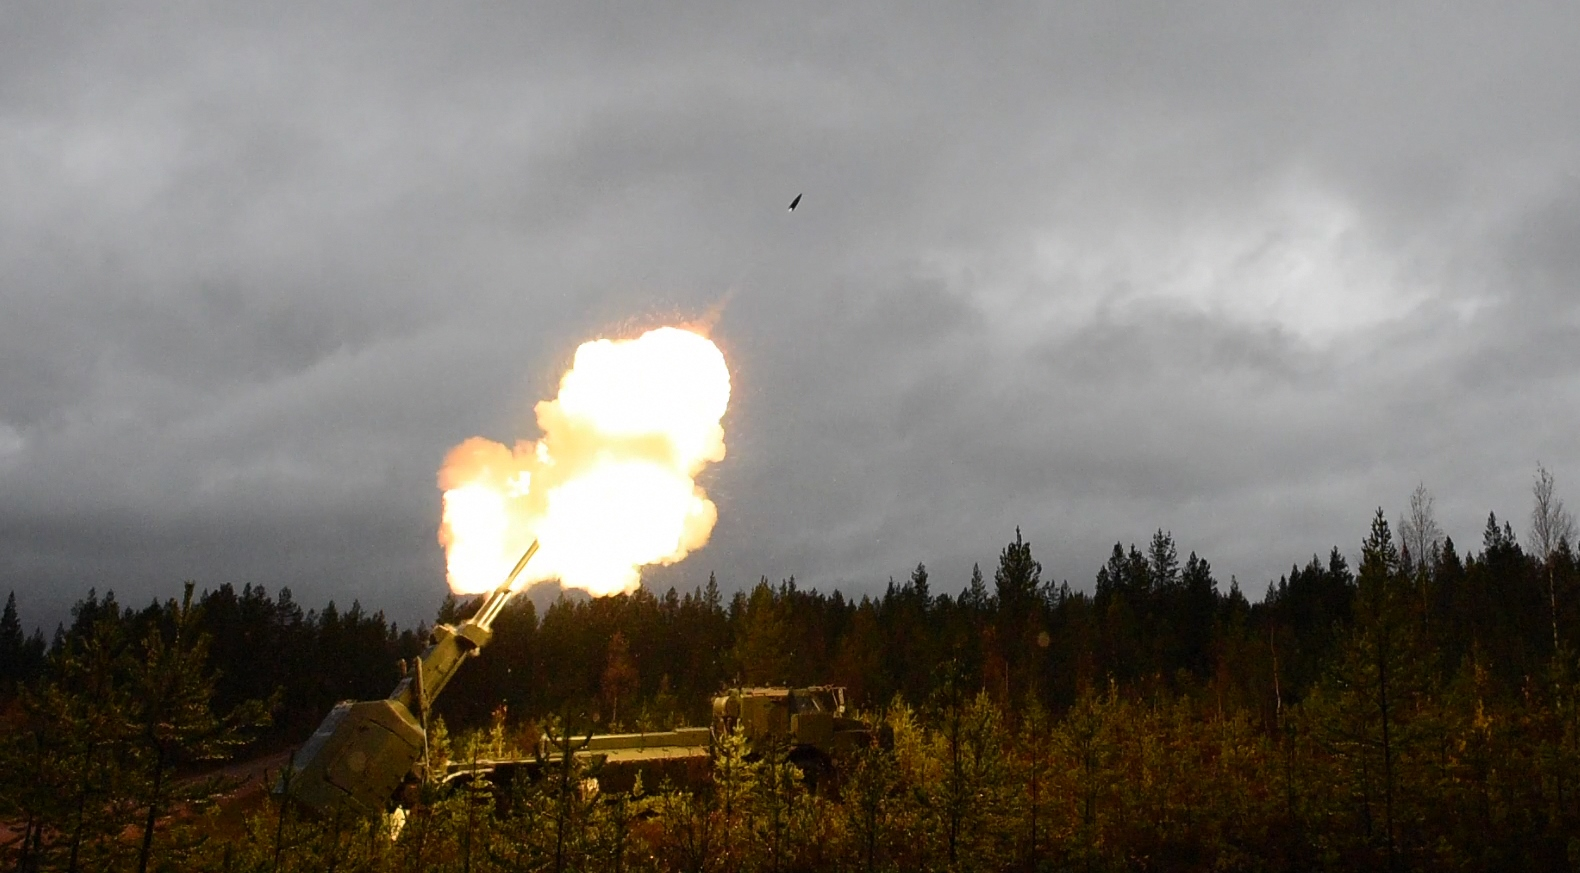 A 155 mm Insensitive Munition High Explosive Extended Range (IM HE-ER) was successfully test fired at 32 km range, in Älvdalen, Sweden, March 25, 2015. (Photo: Nammo AS)